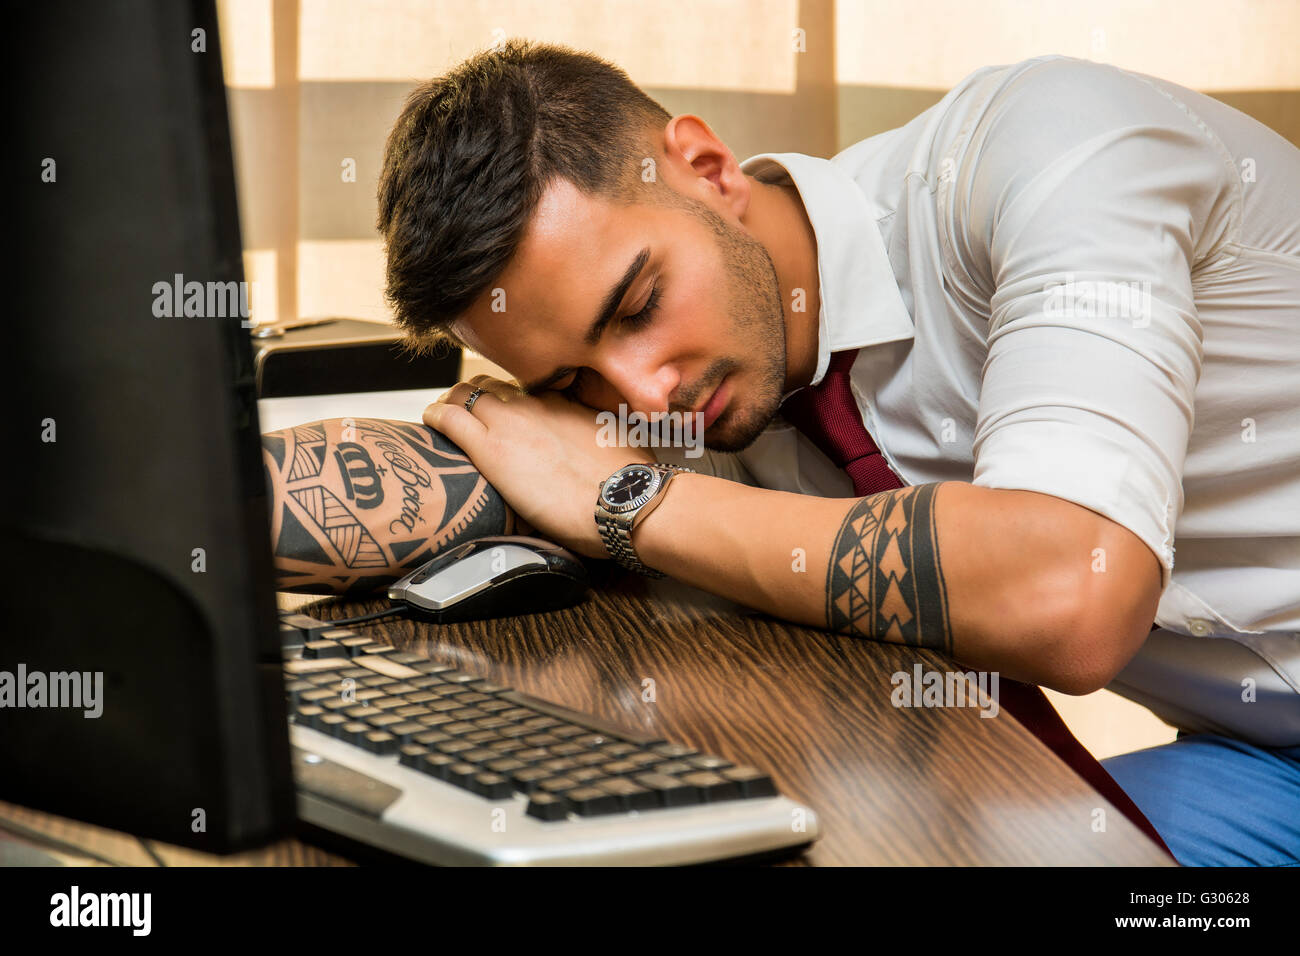 Overworked, tired young businessman sleeping on his desk in office, in front of computer - Stock Image